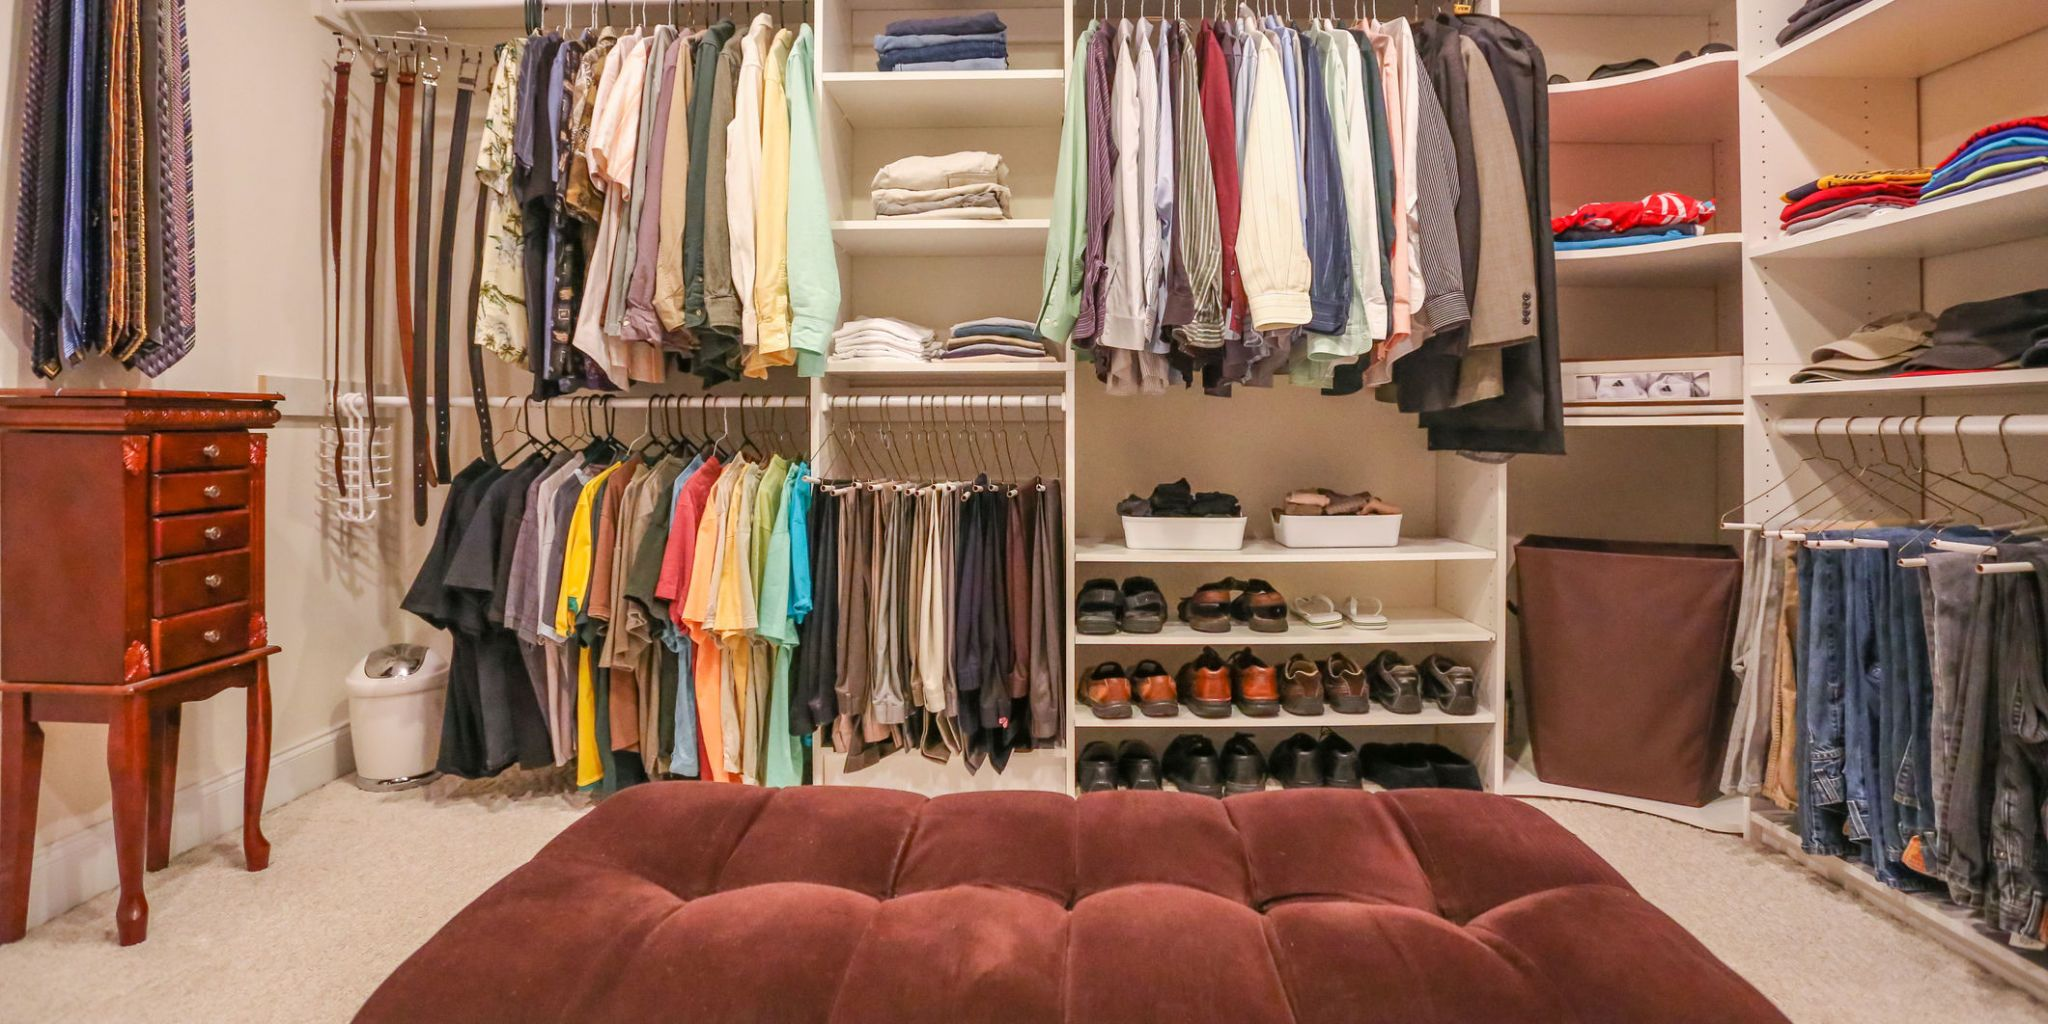 Why Should We Dedicate An Entire Area Of Our Home To Storing What We Donu0027t  Really Need?